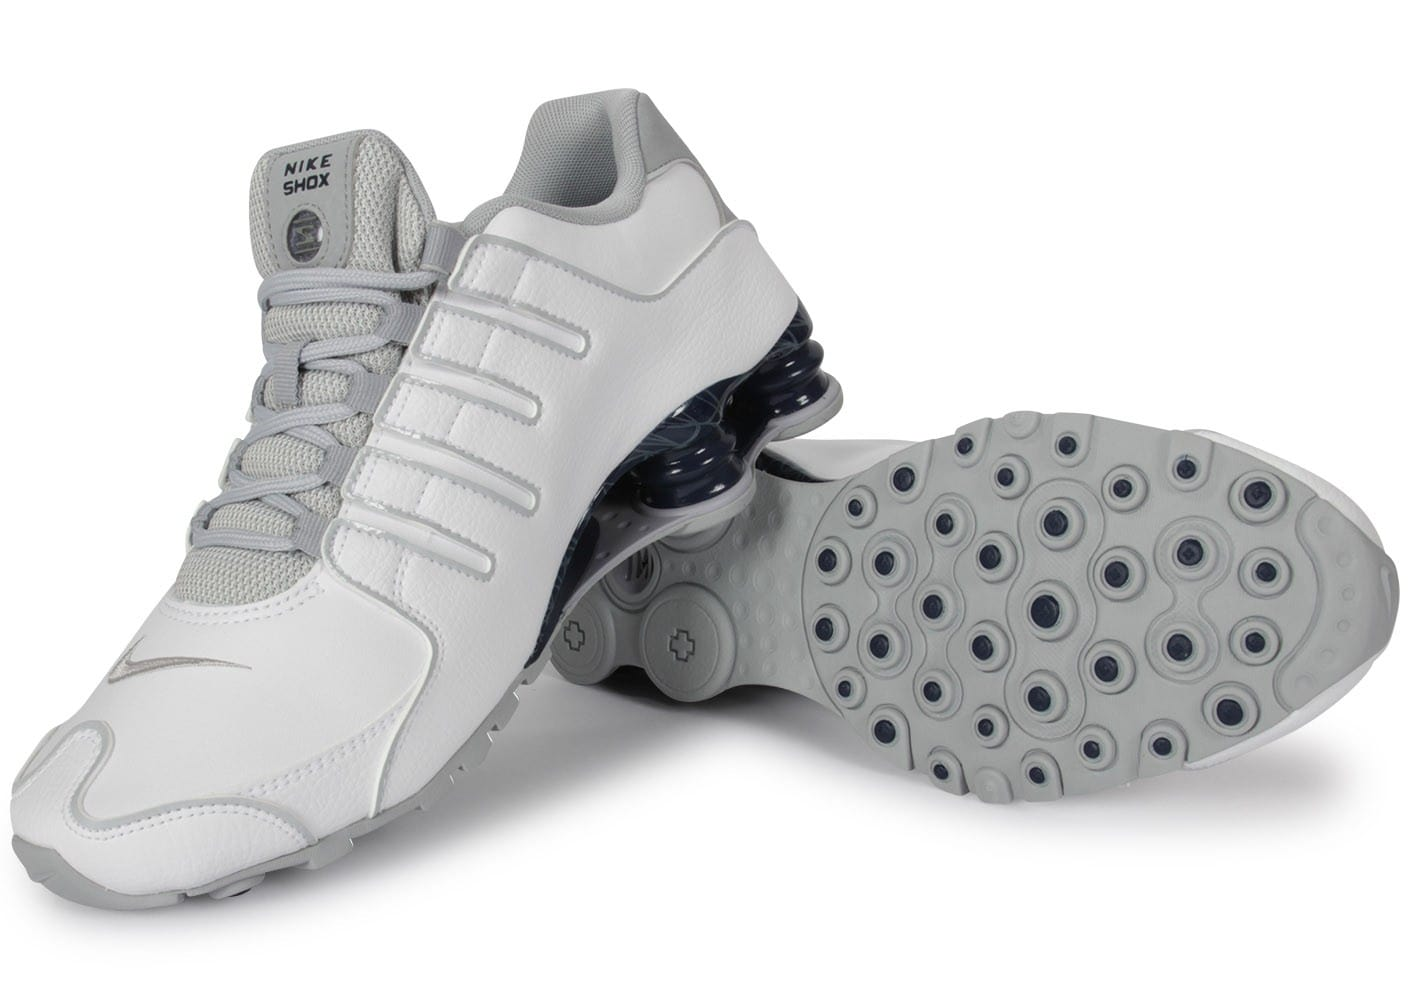 huge selection of f9628 8669f ... Chaussures Nike Shox Nz Blanche vue intérieure ...